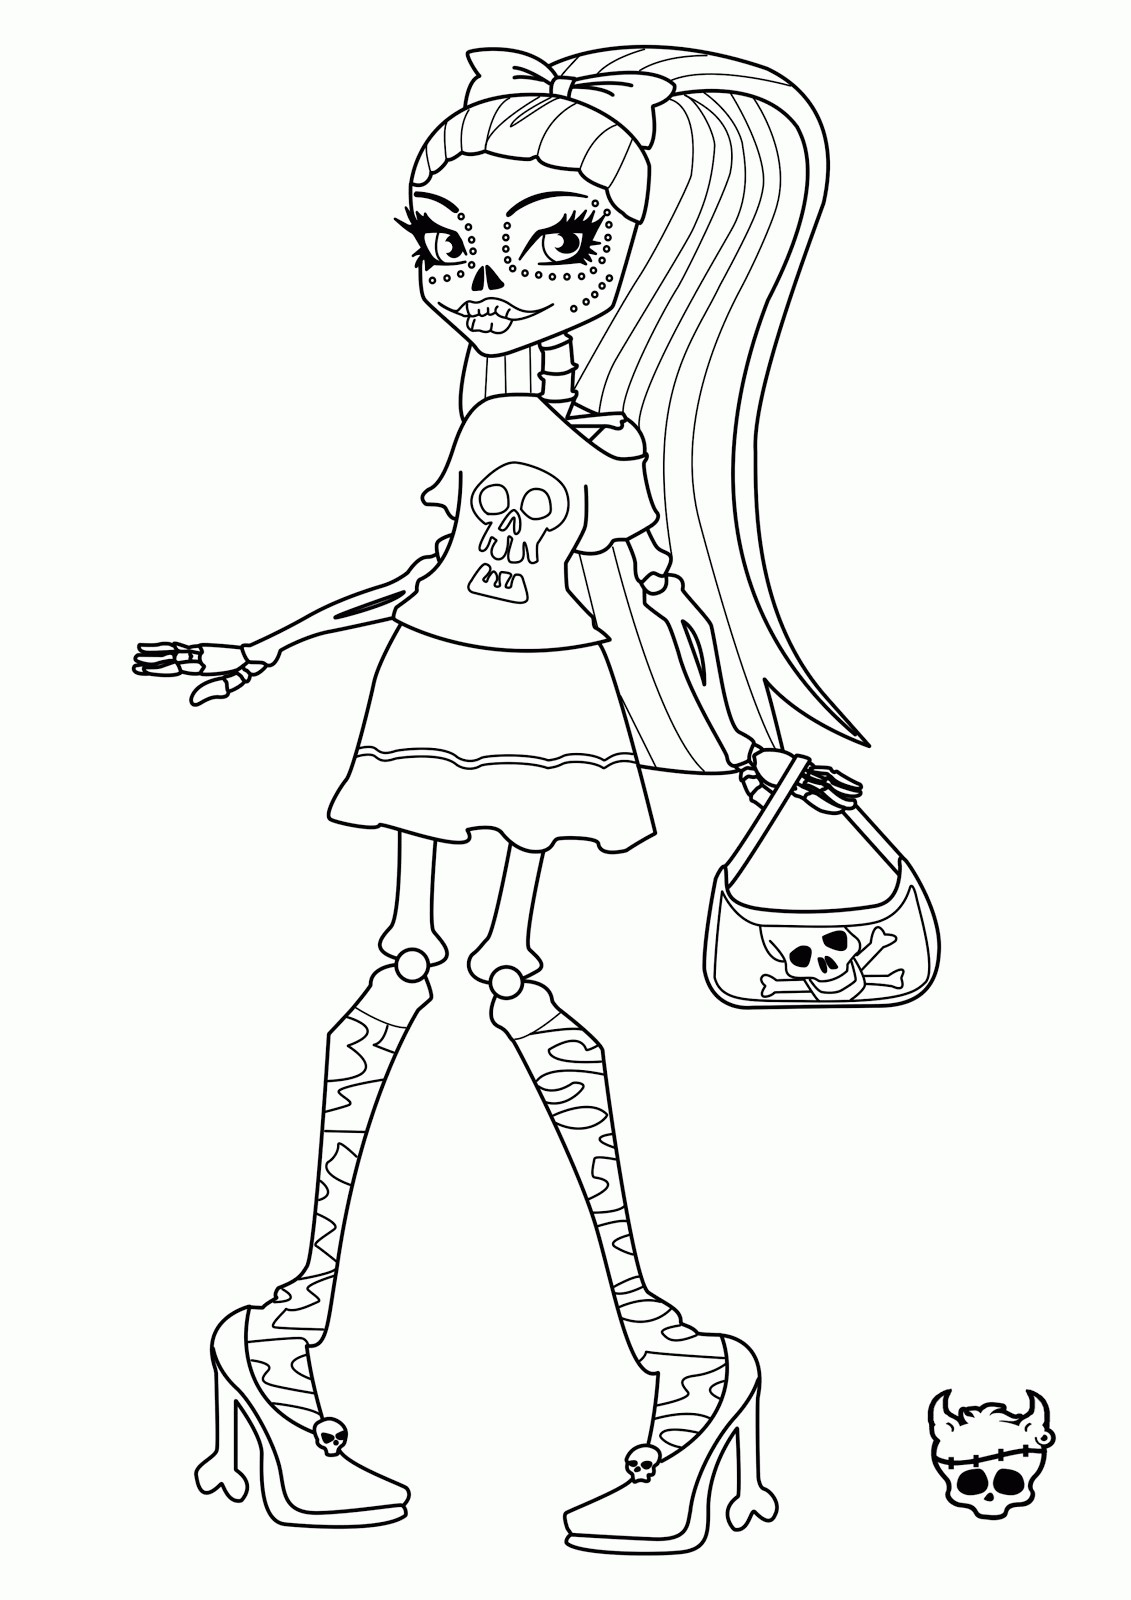 Monster High Coloring Pages Cartoon Jr Fresh Frankie Stein Color to Print Of Monster High Baby Coloring Pages 012 to Coloring Pages Collection